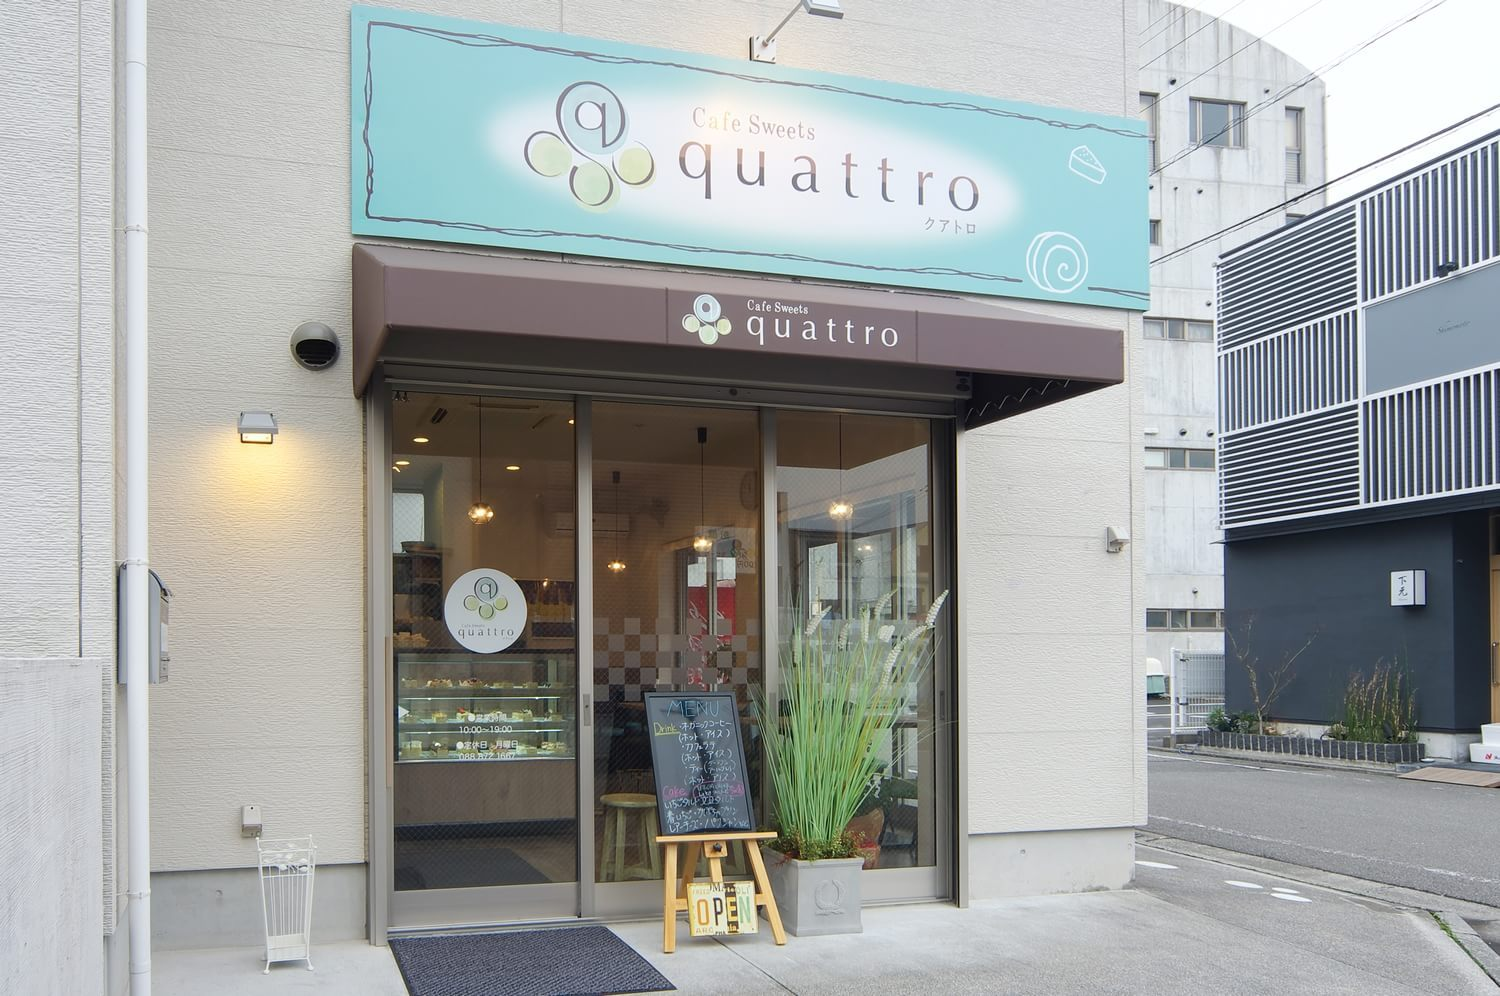 cafe&sweets quattro(カフェスイーツ クアトロ)_1